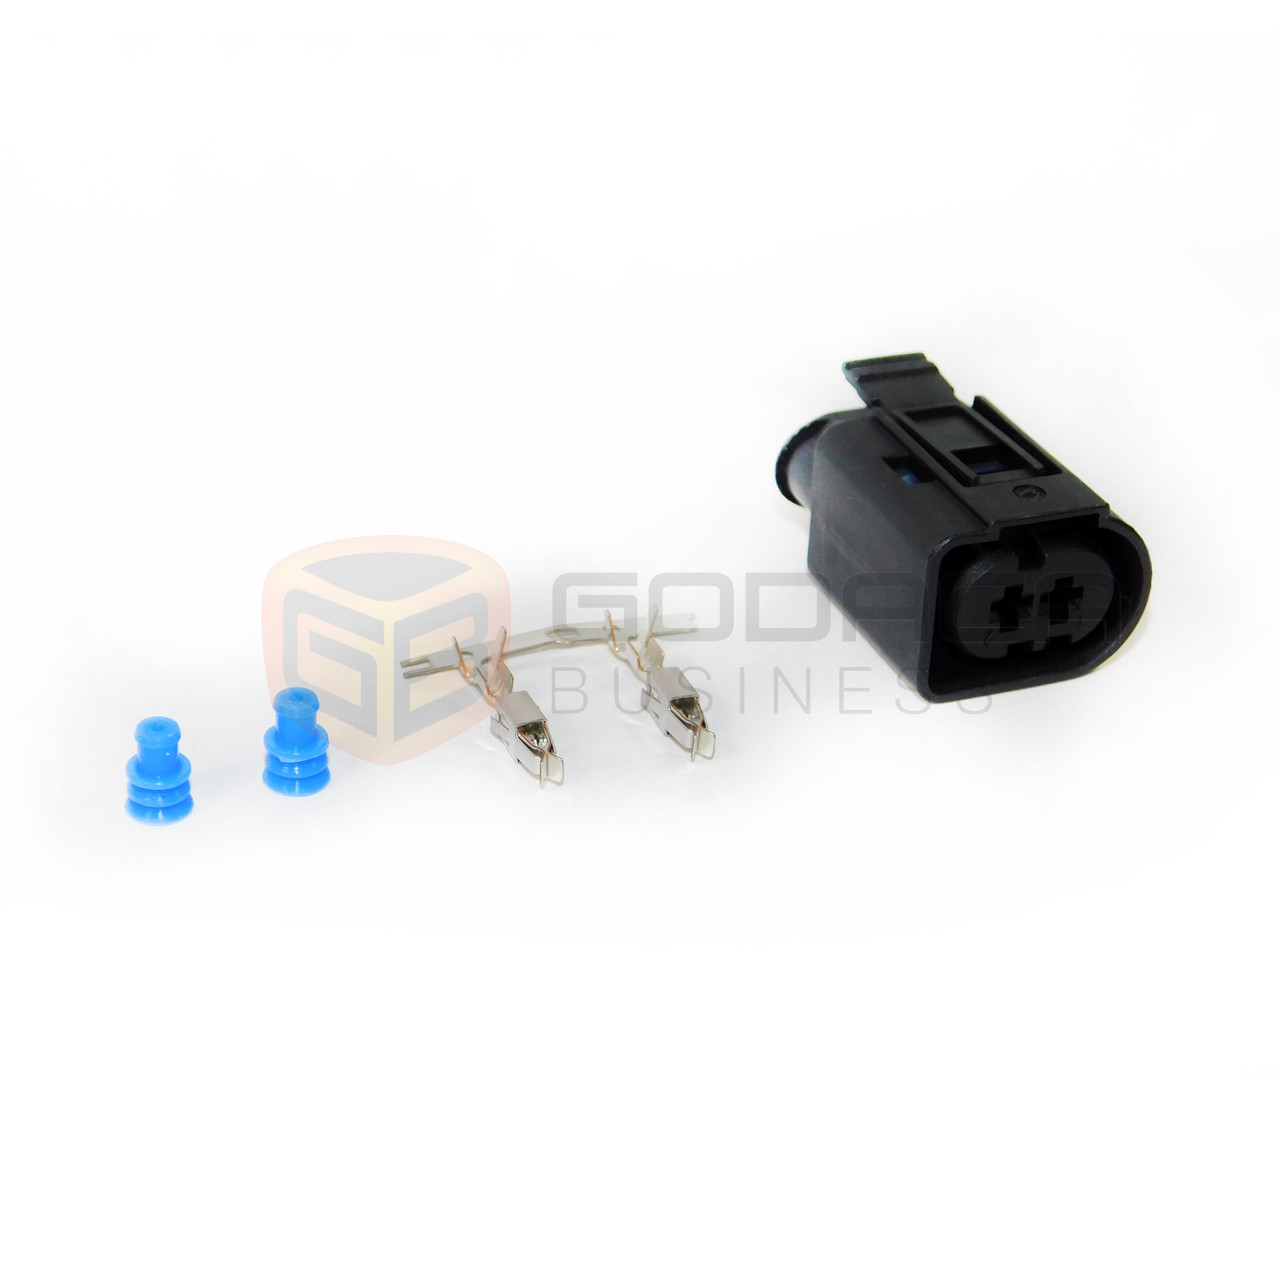 1x Connector 2 pin for tyco BMW Mercedes Benz 1-967412-2 w/out wire ...